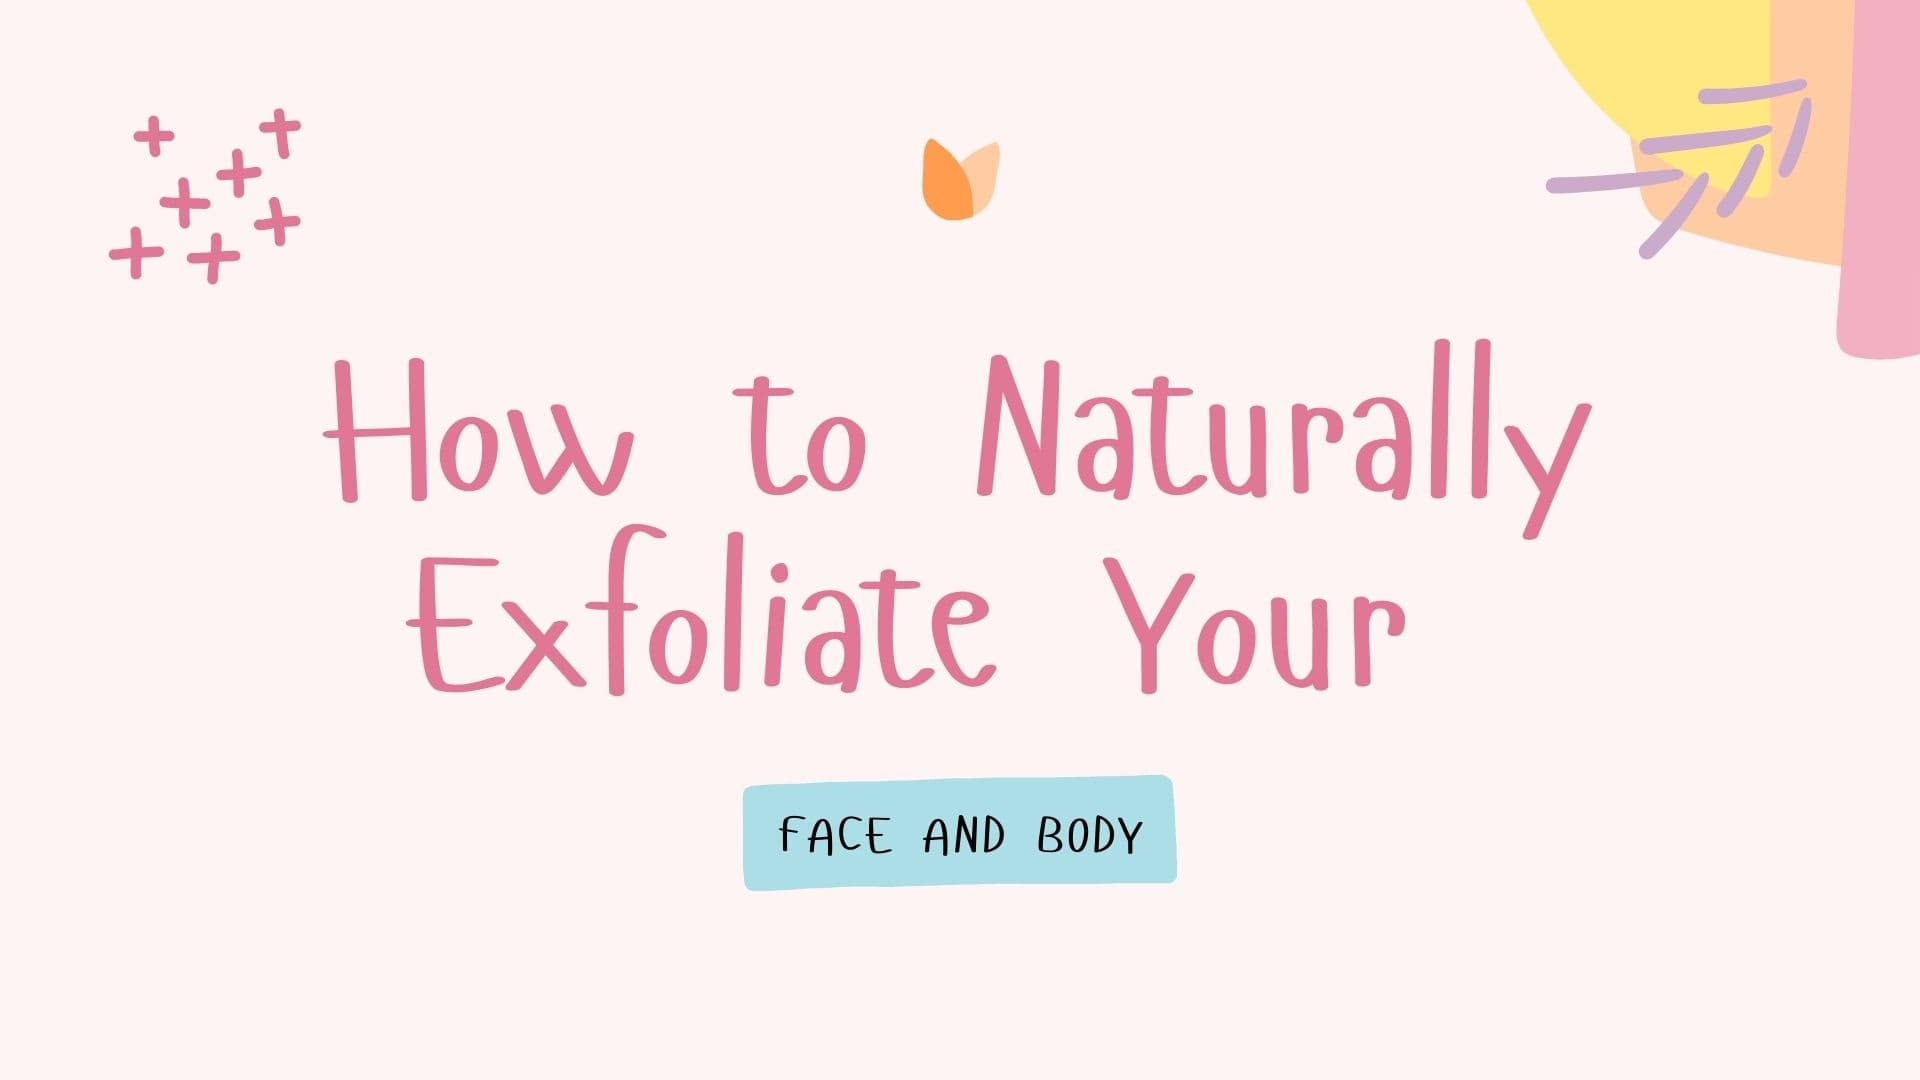 How to Naturally Exfoliate Your Face and Body